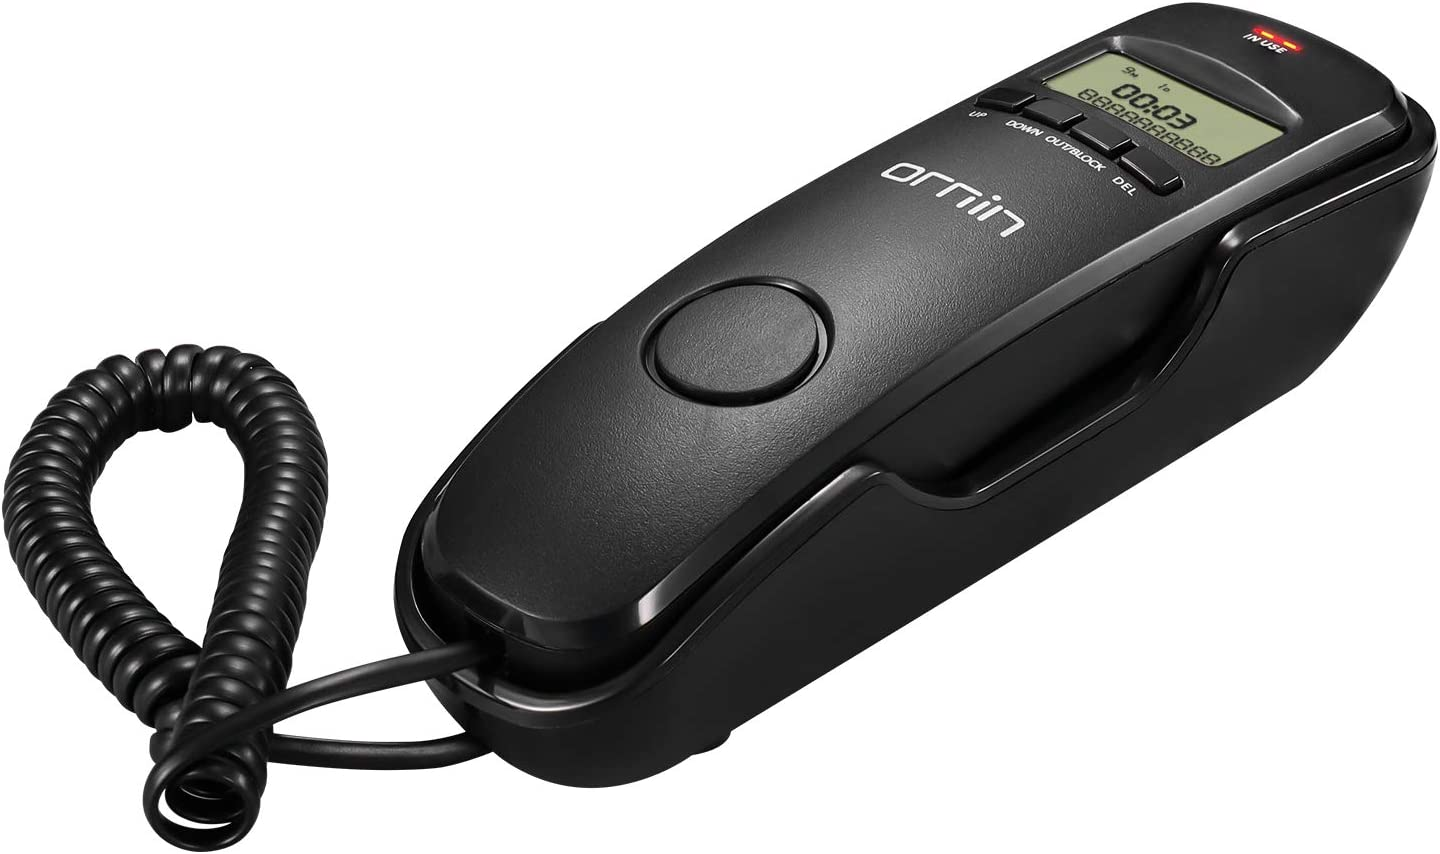 Ornin T112 Trimline Corded Telephone with Caller ID (Black)